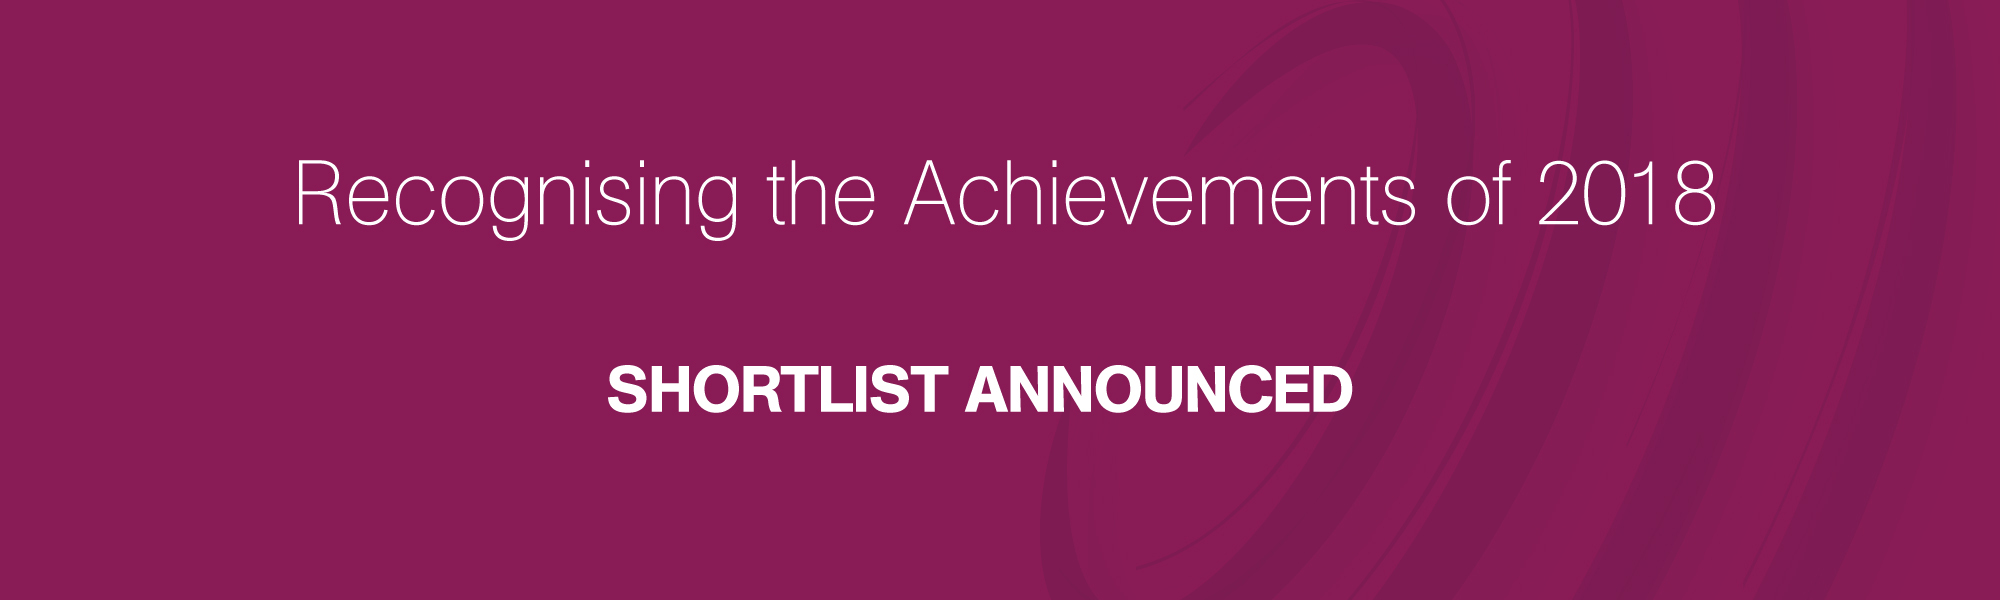 Shortlists Announced